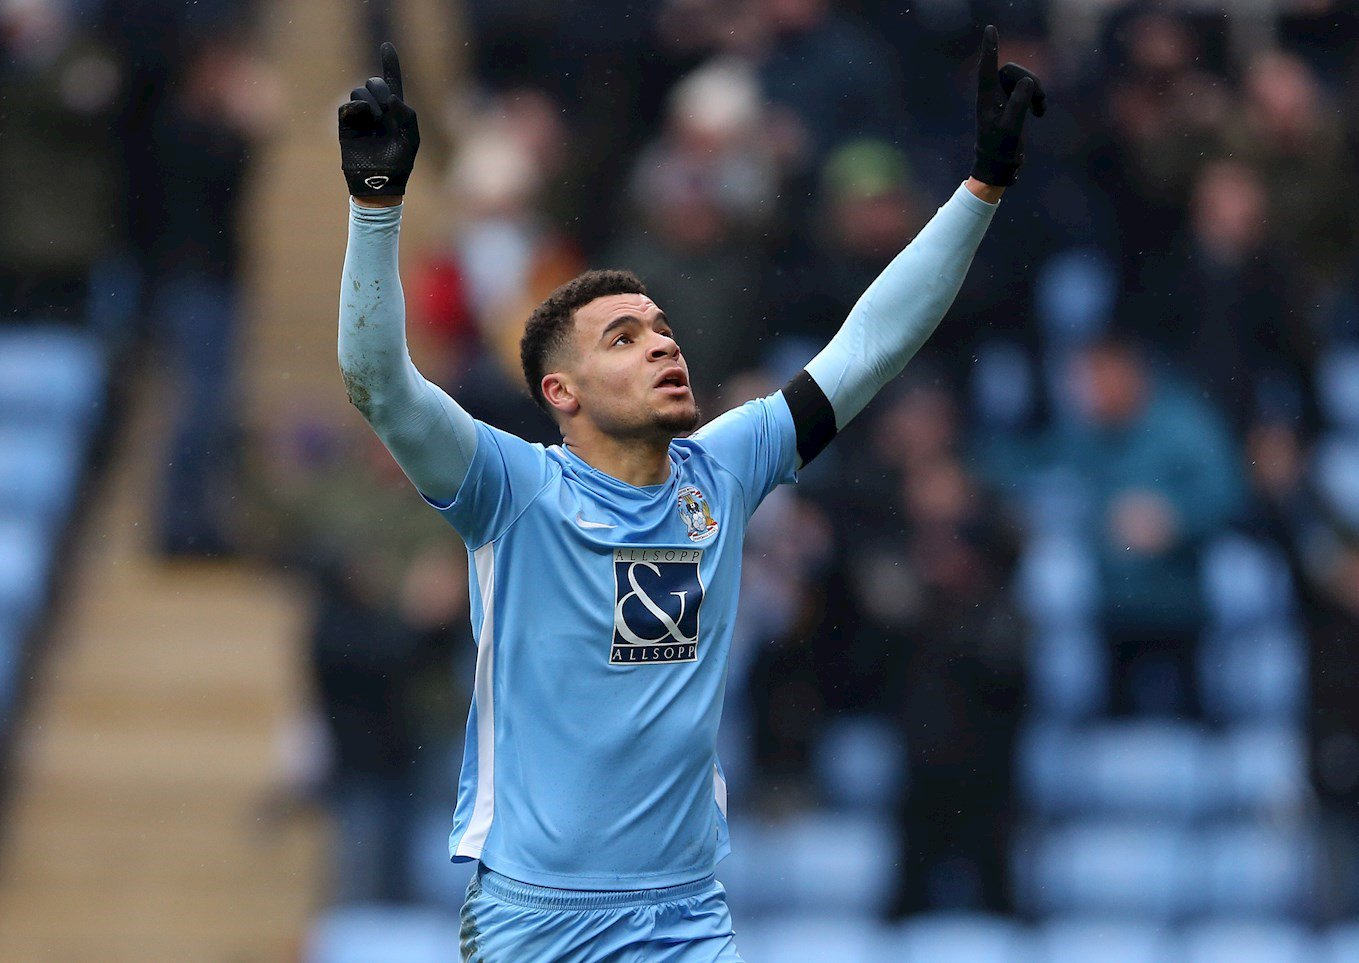 Max Biamou celebrated first league goal for Coventry City